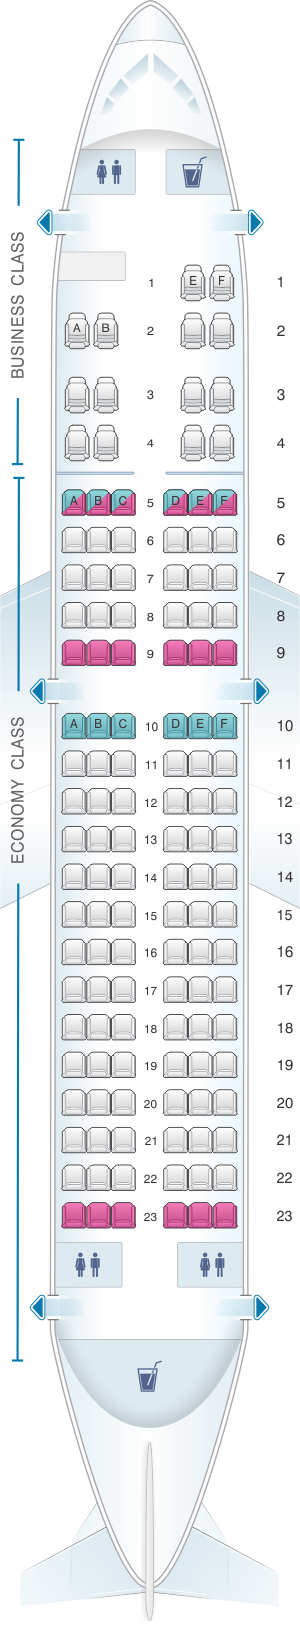 Seat map for Csa Czech Airlines Airbus A319 100